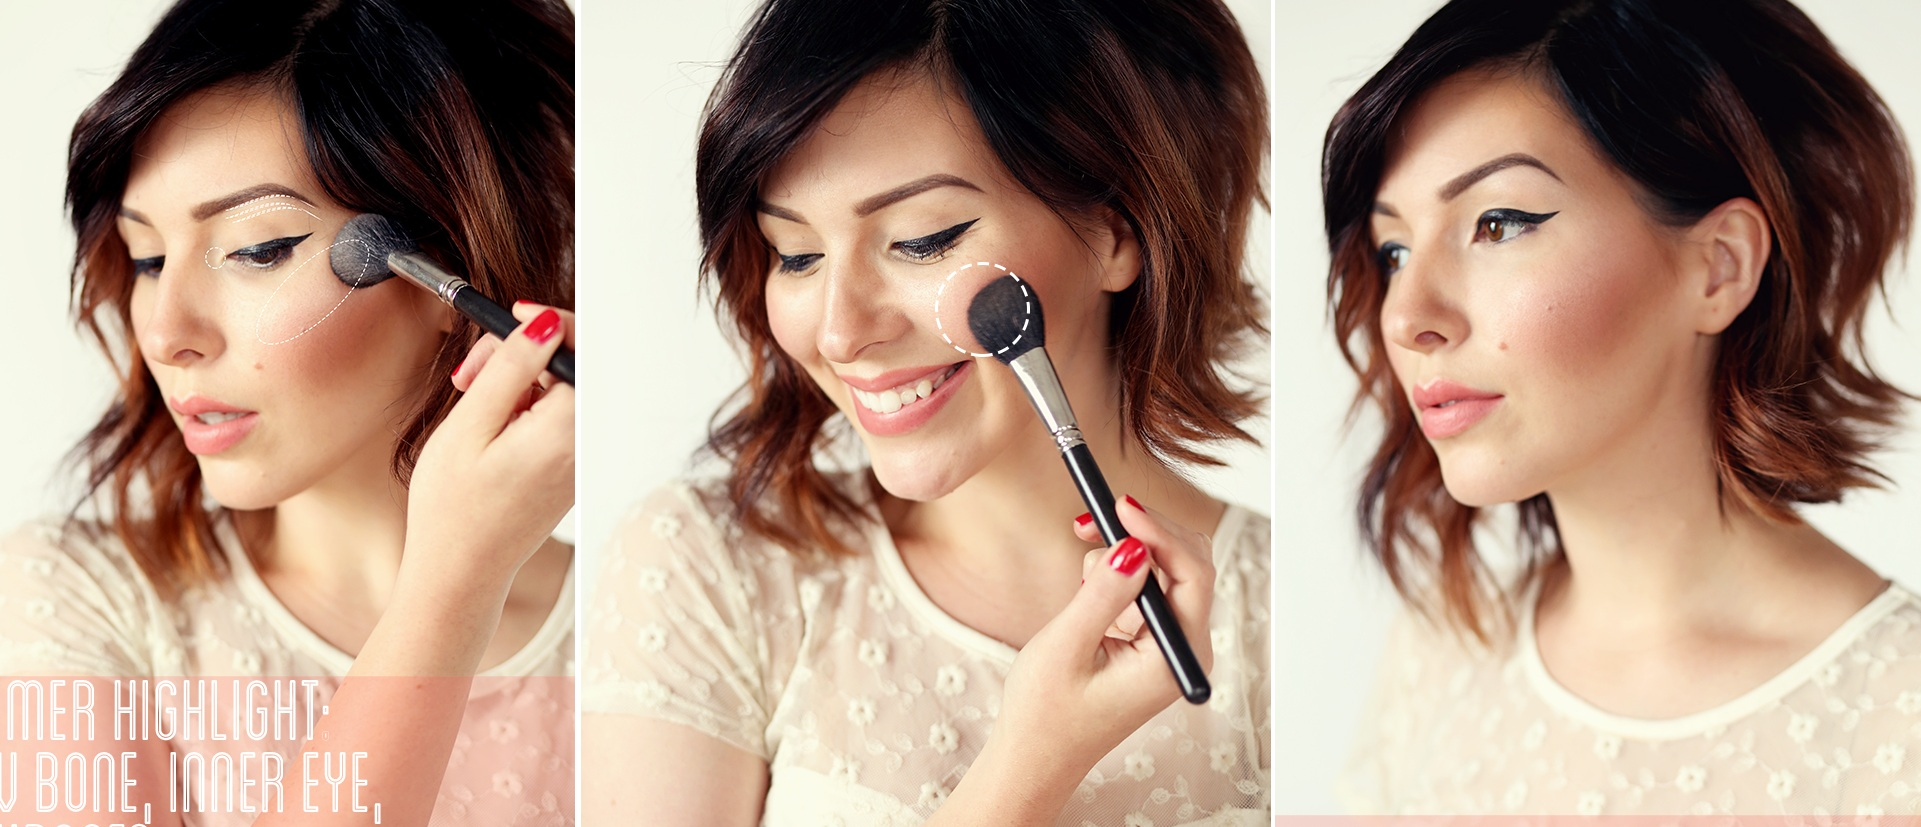 how-to-apply-blush-on-makeup-perfectly for any face shape